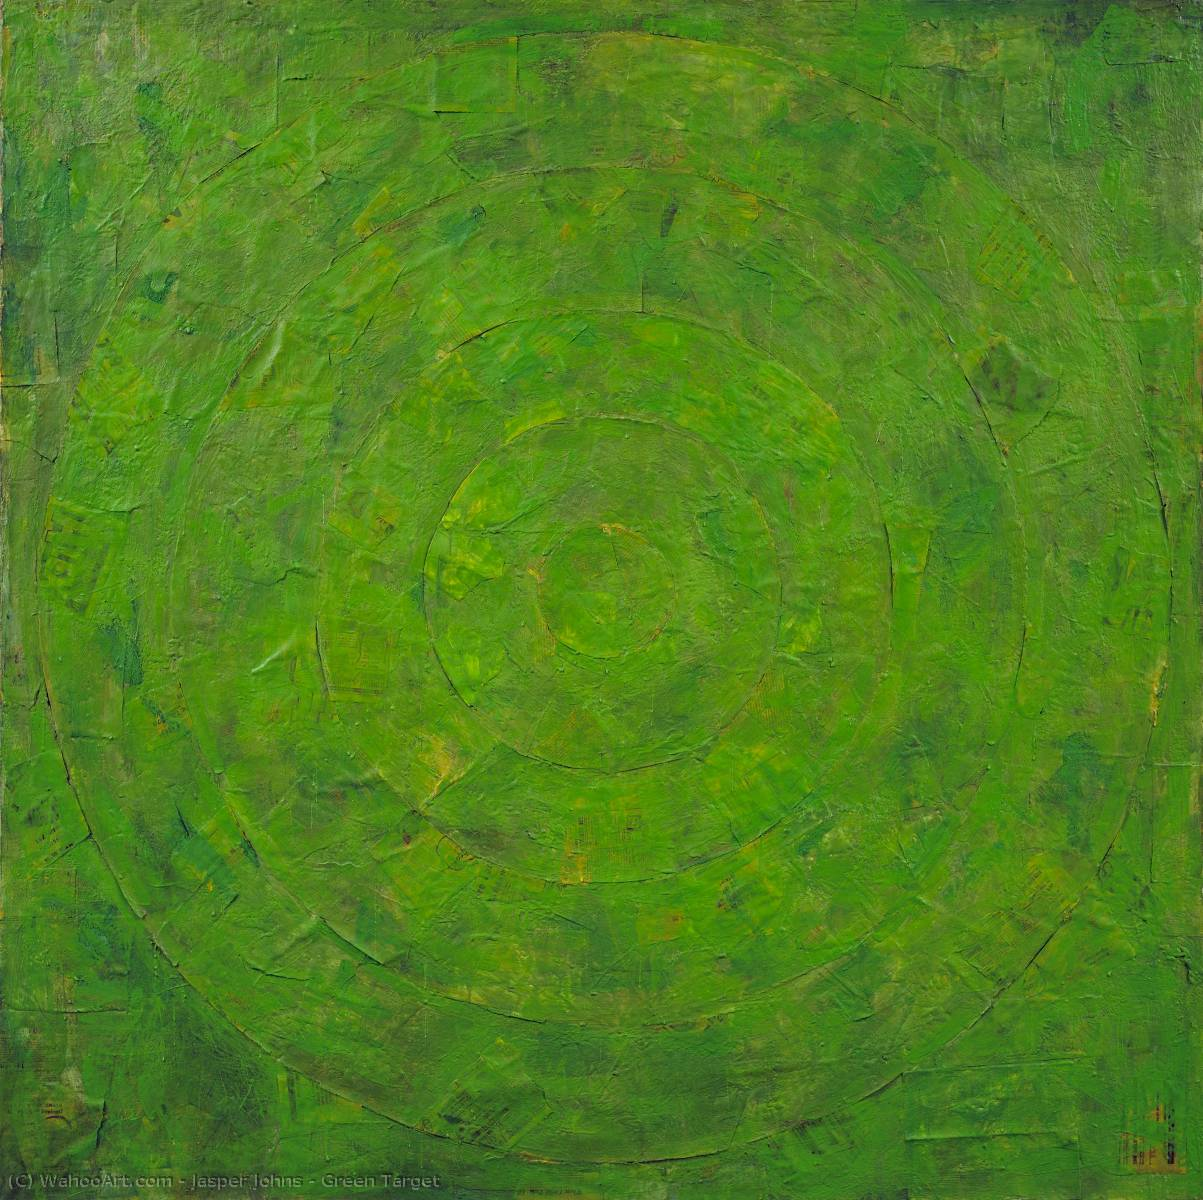 Green Target by Jasper Johns